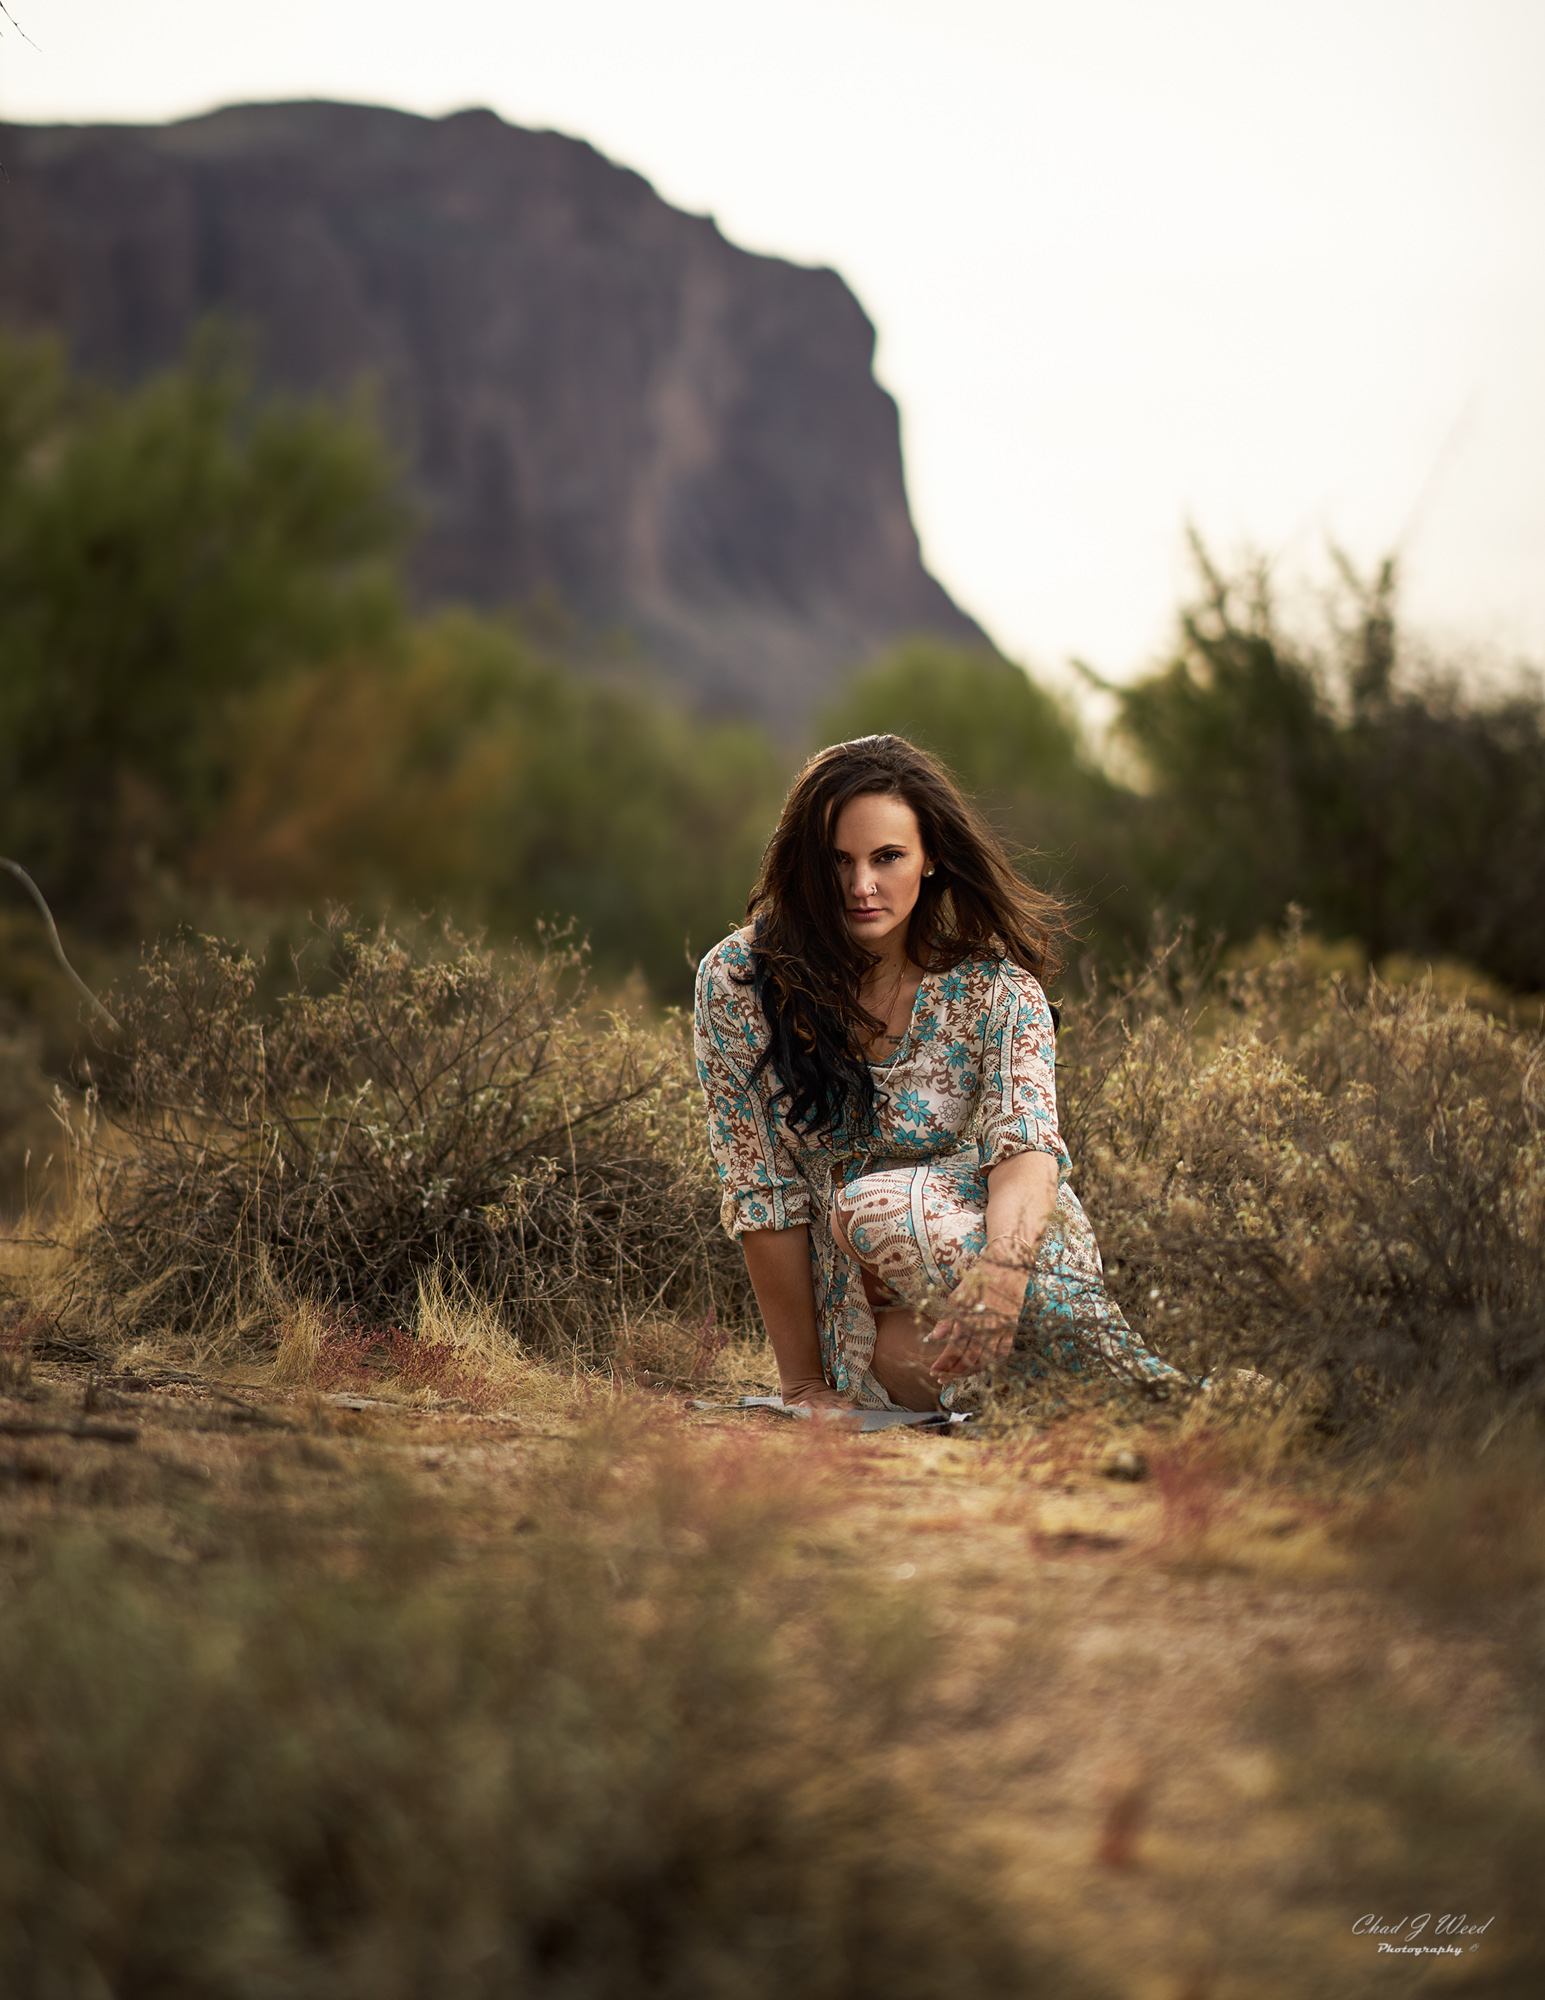 Erica's Editorial 1 at Superstition Mountains by Mesa Arizona Portrait Photographer Chad Weed